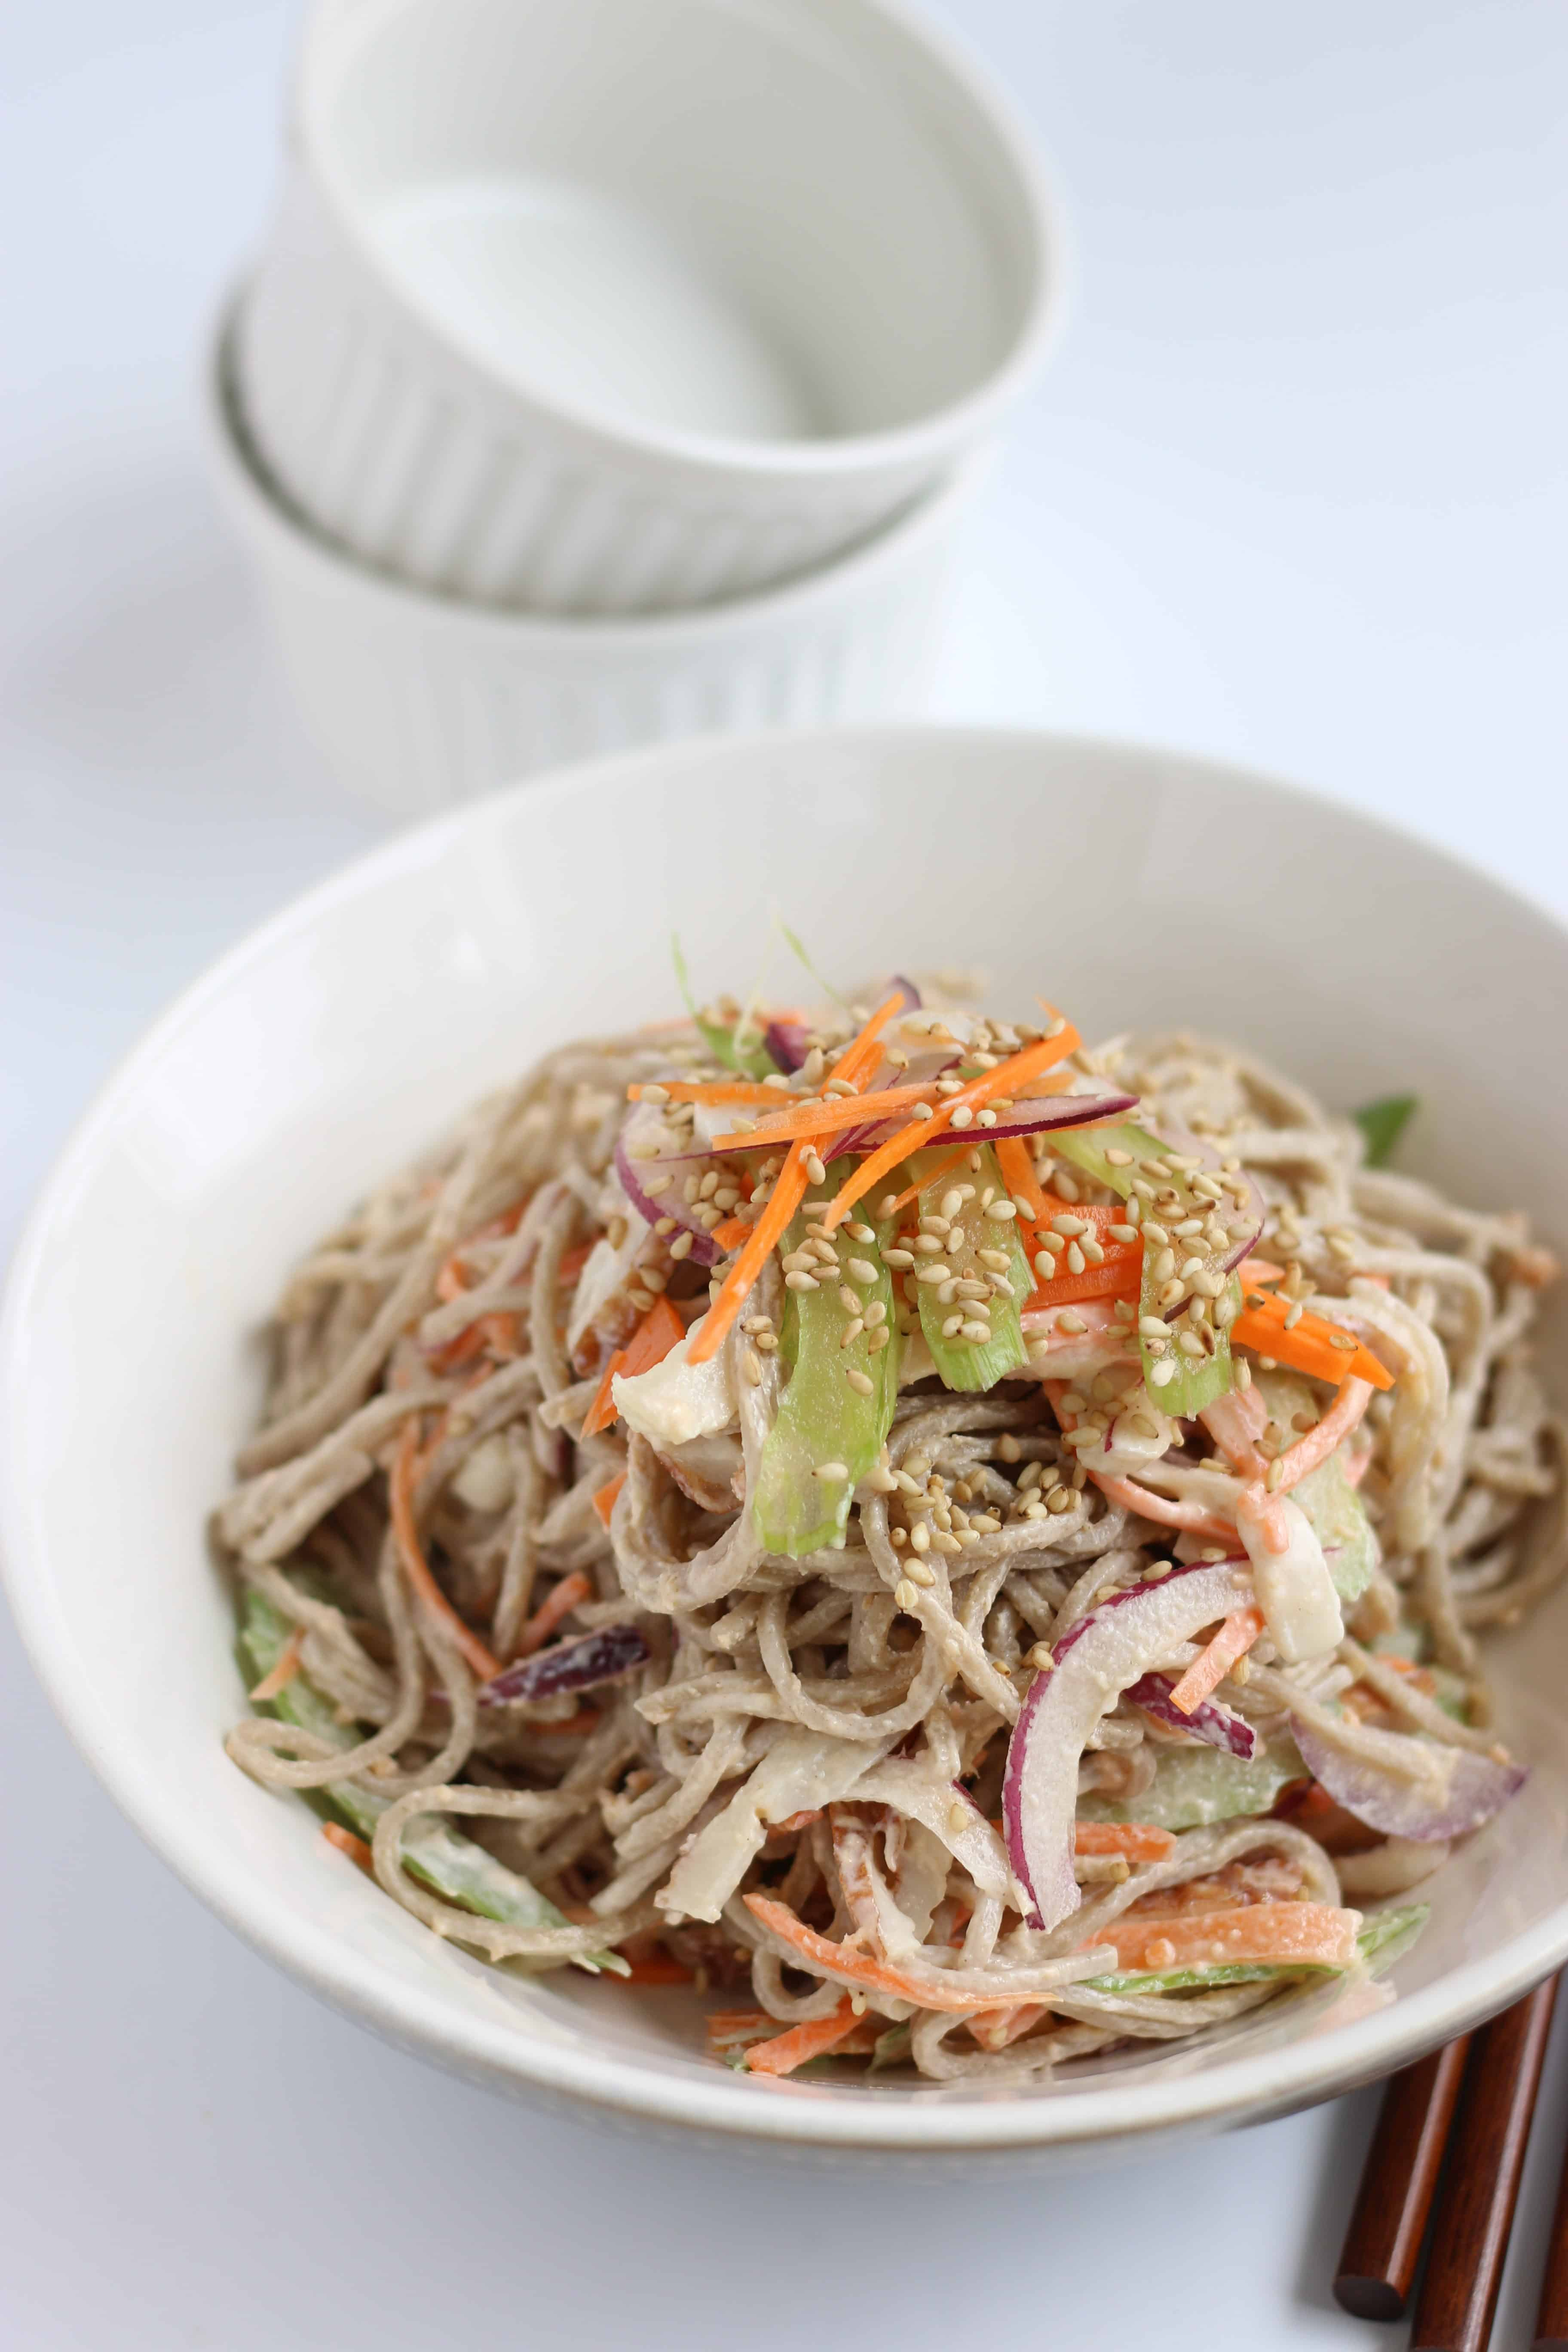 Soba noodle salad. Japanese soba noodle turn into a colorful salad. Mix soba noodle with lots of fresh vegetables and refreshing mayo dressing. It's easy to make and perfect for light meal.